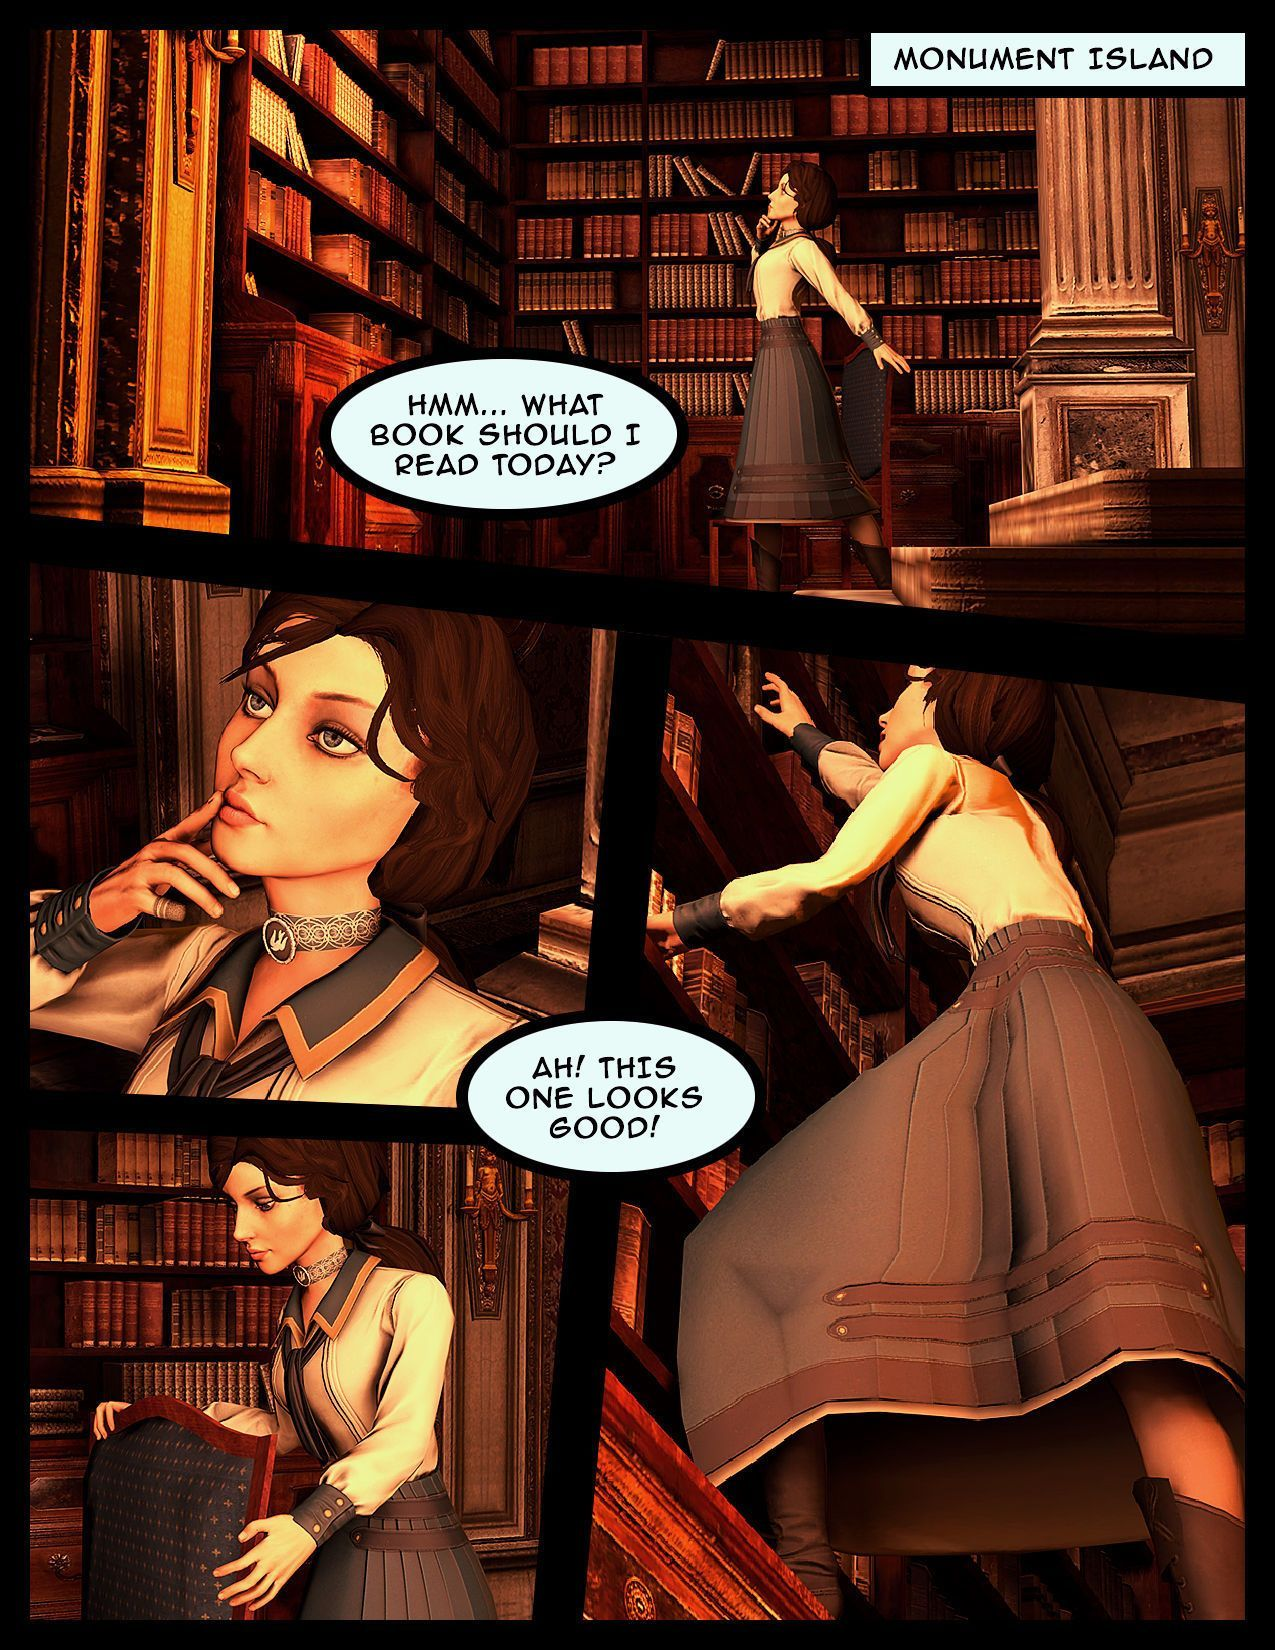 [Vaurra] Teaching Elizabeth (Bioshock Infinite)